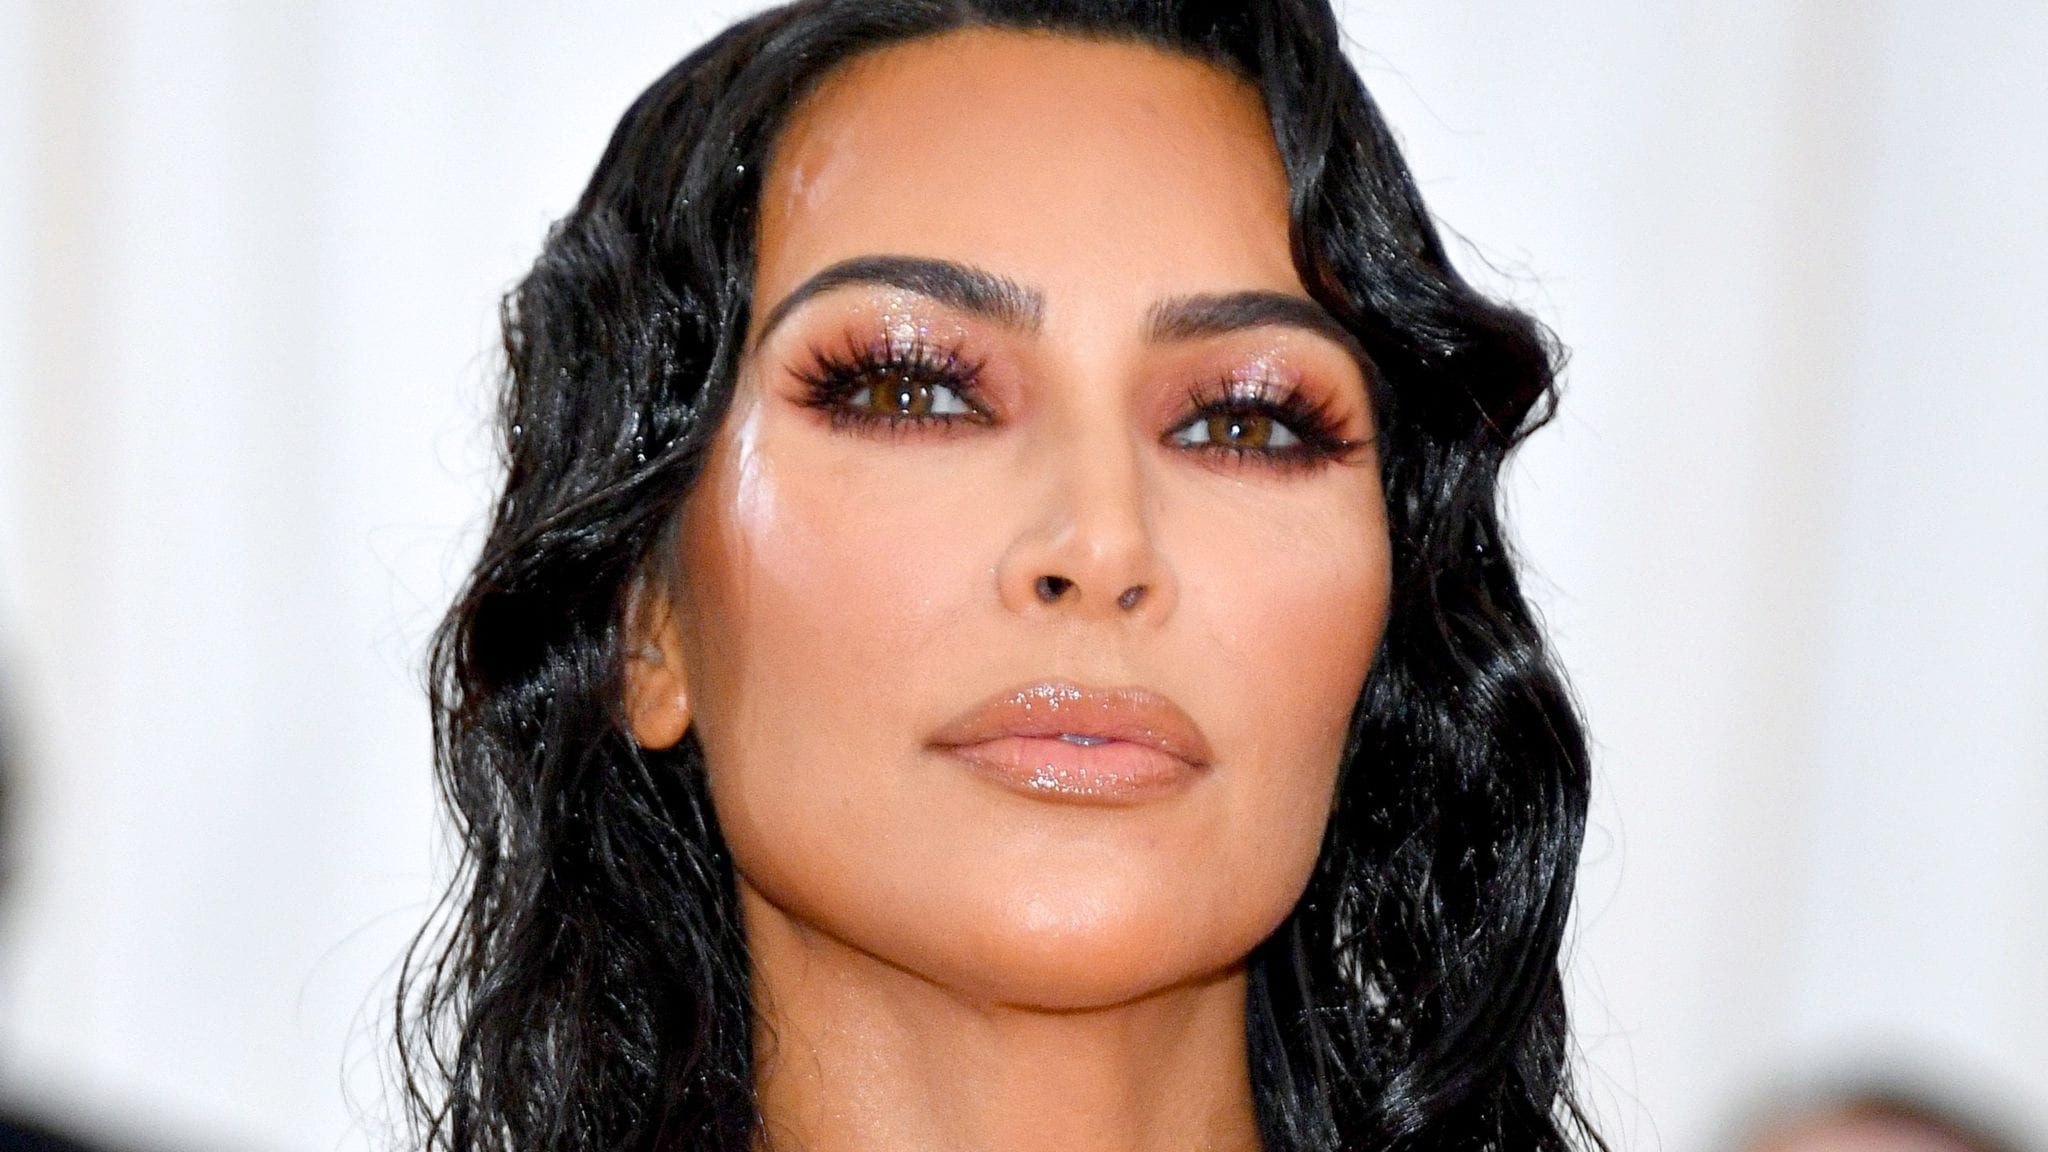 Kim Kardashian reveals that Exilis Ultra Skin Tightening is her new favorite facial - a treatment available at Joules Medical Aesthetics in Plano TX.